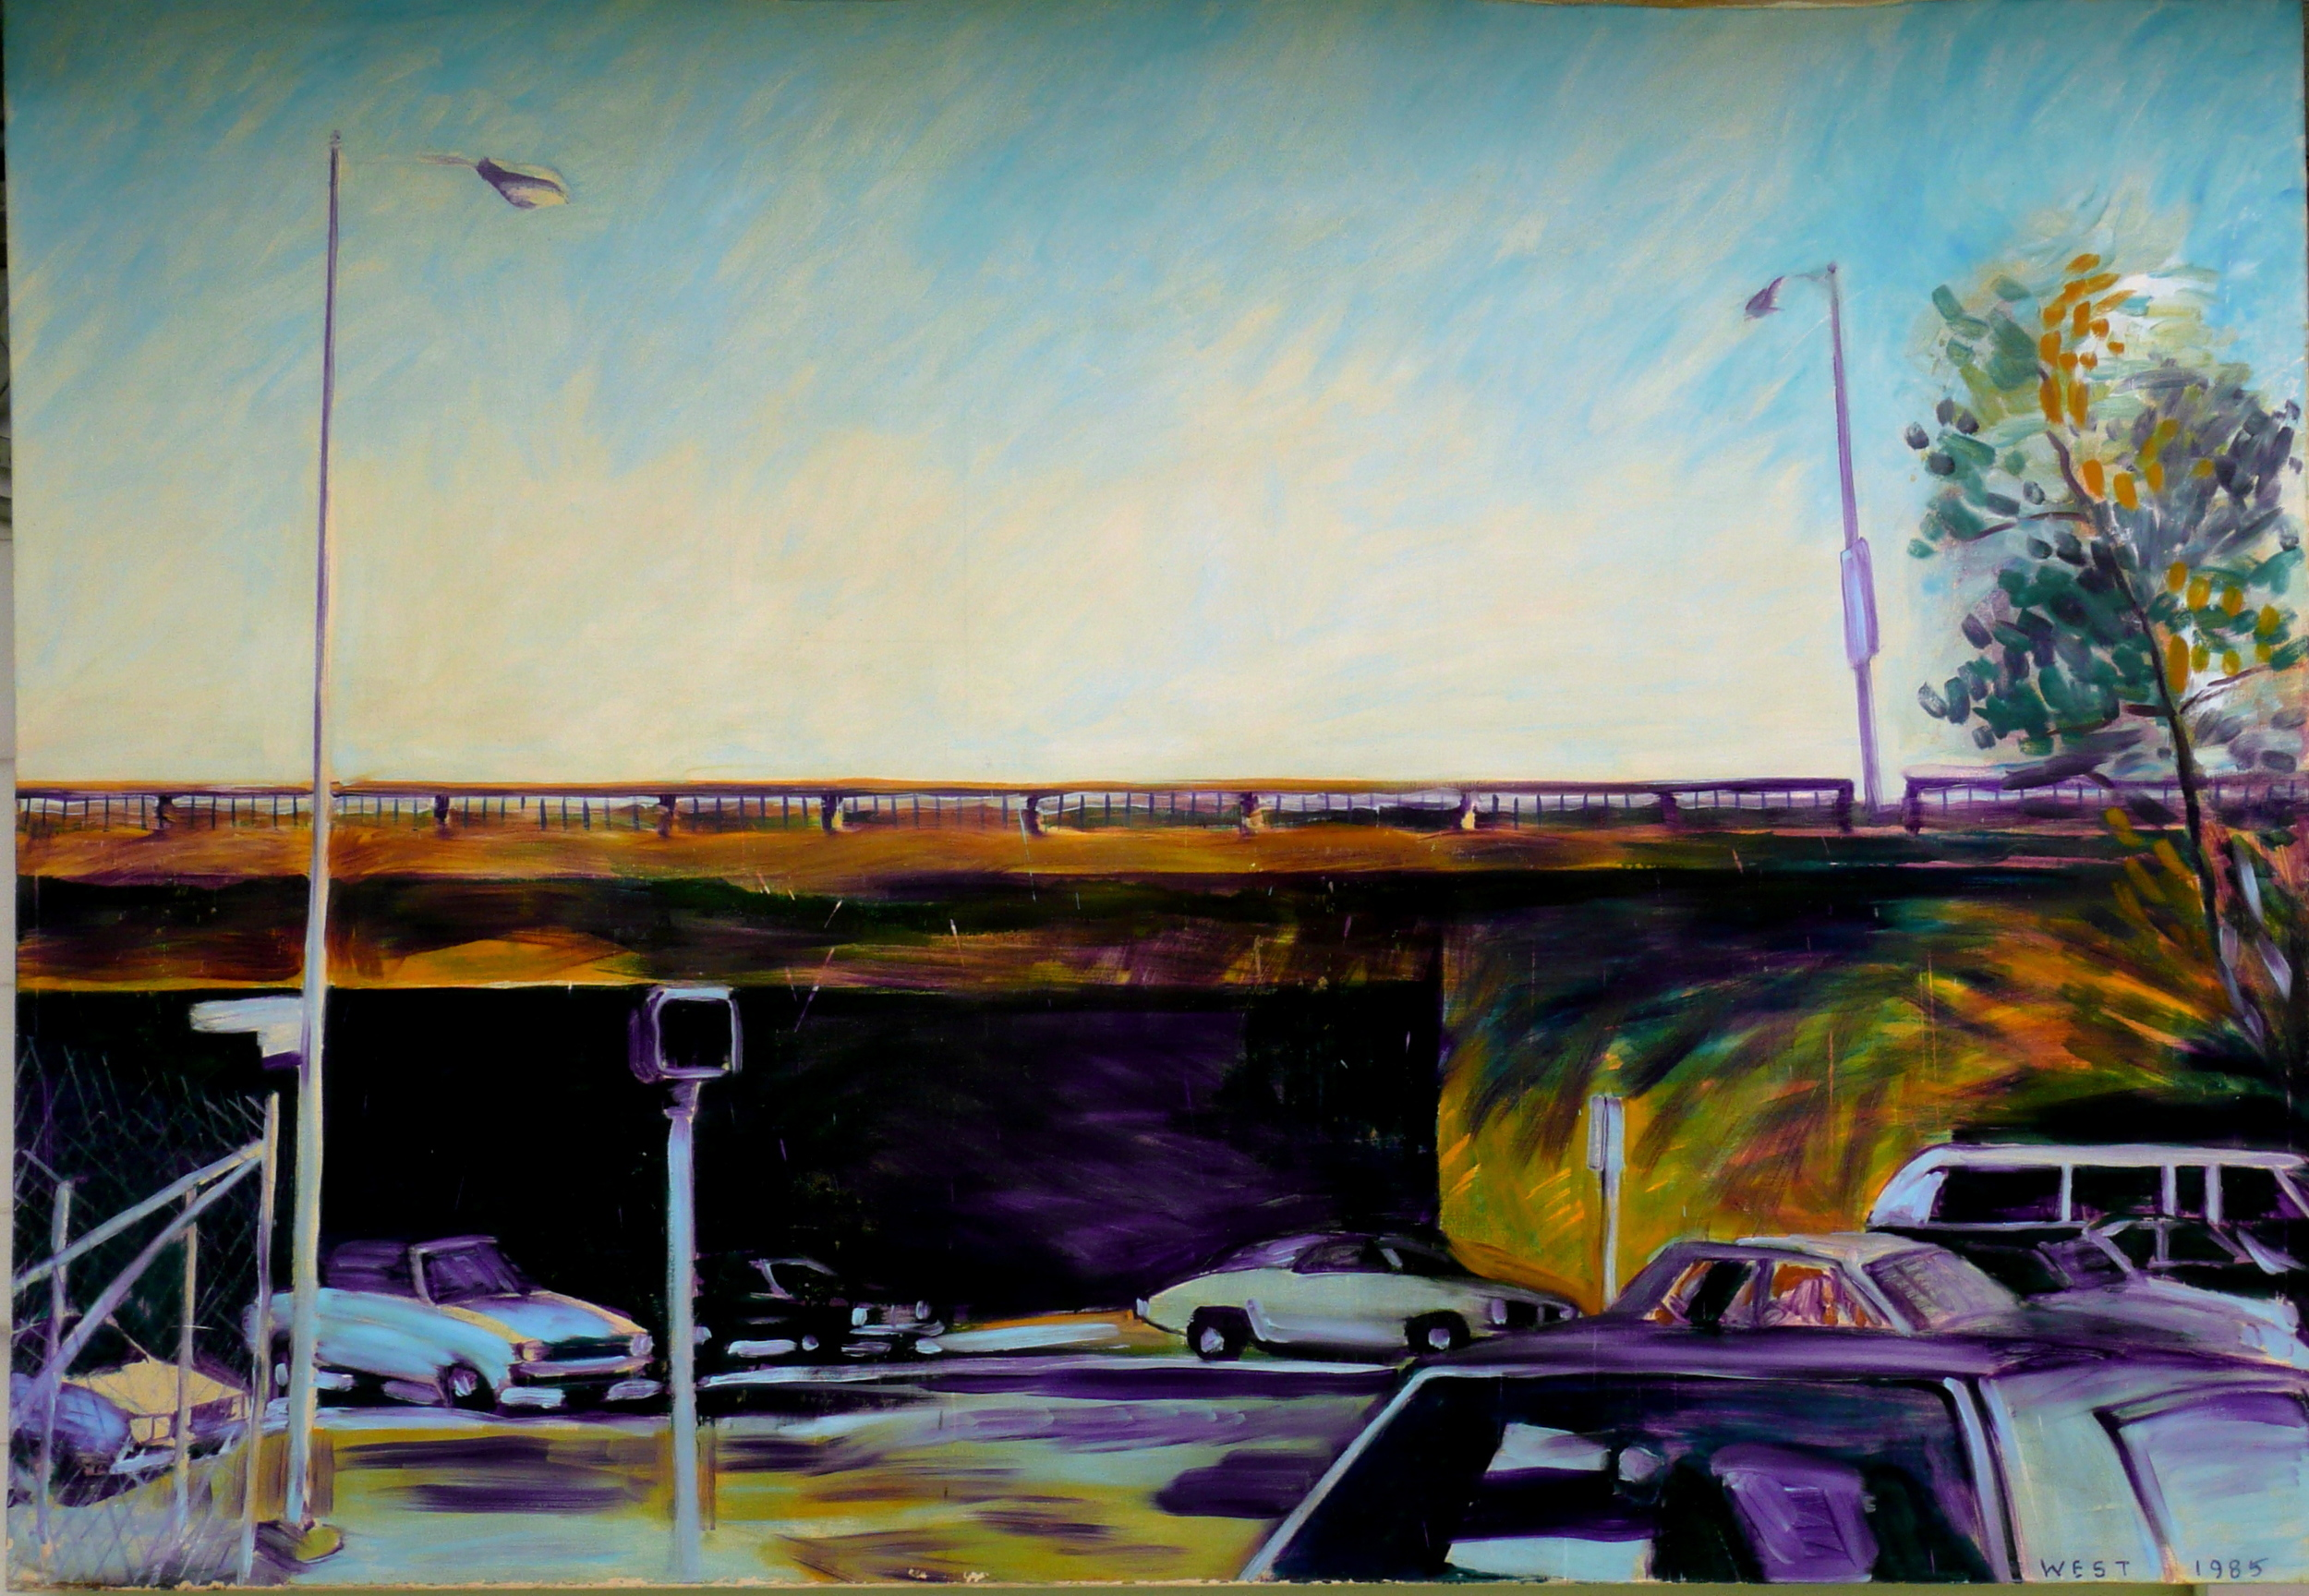 Sepulveda Boulevard, Los Angeles , 78 x 54 inches,      1985.  This large format composition features impressionistic sky treatments above strong drawing and action painted street scene dominated by the freeway overpass in purples and ocher.